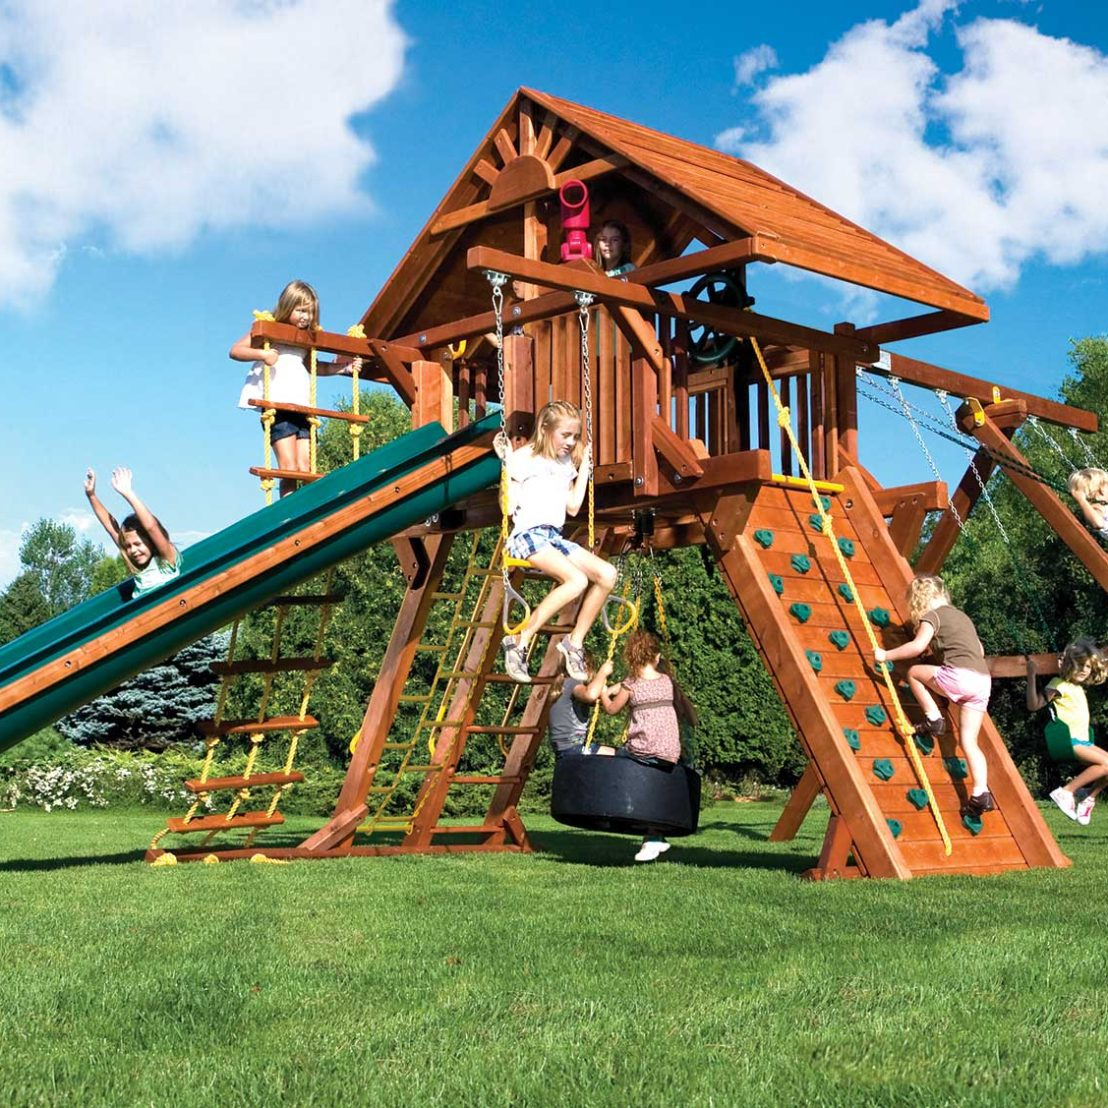 Rainbow Super Turbo Castle Pkg II with Wood Roof Wooden Swing Set